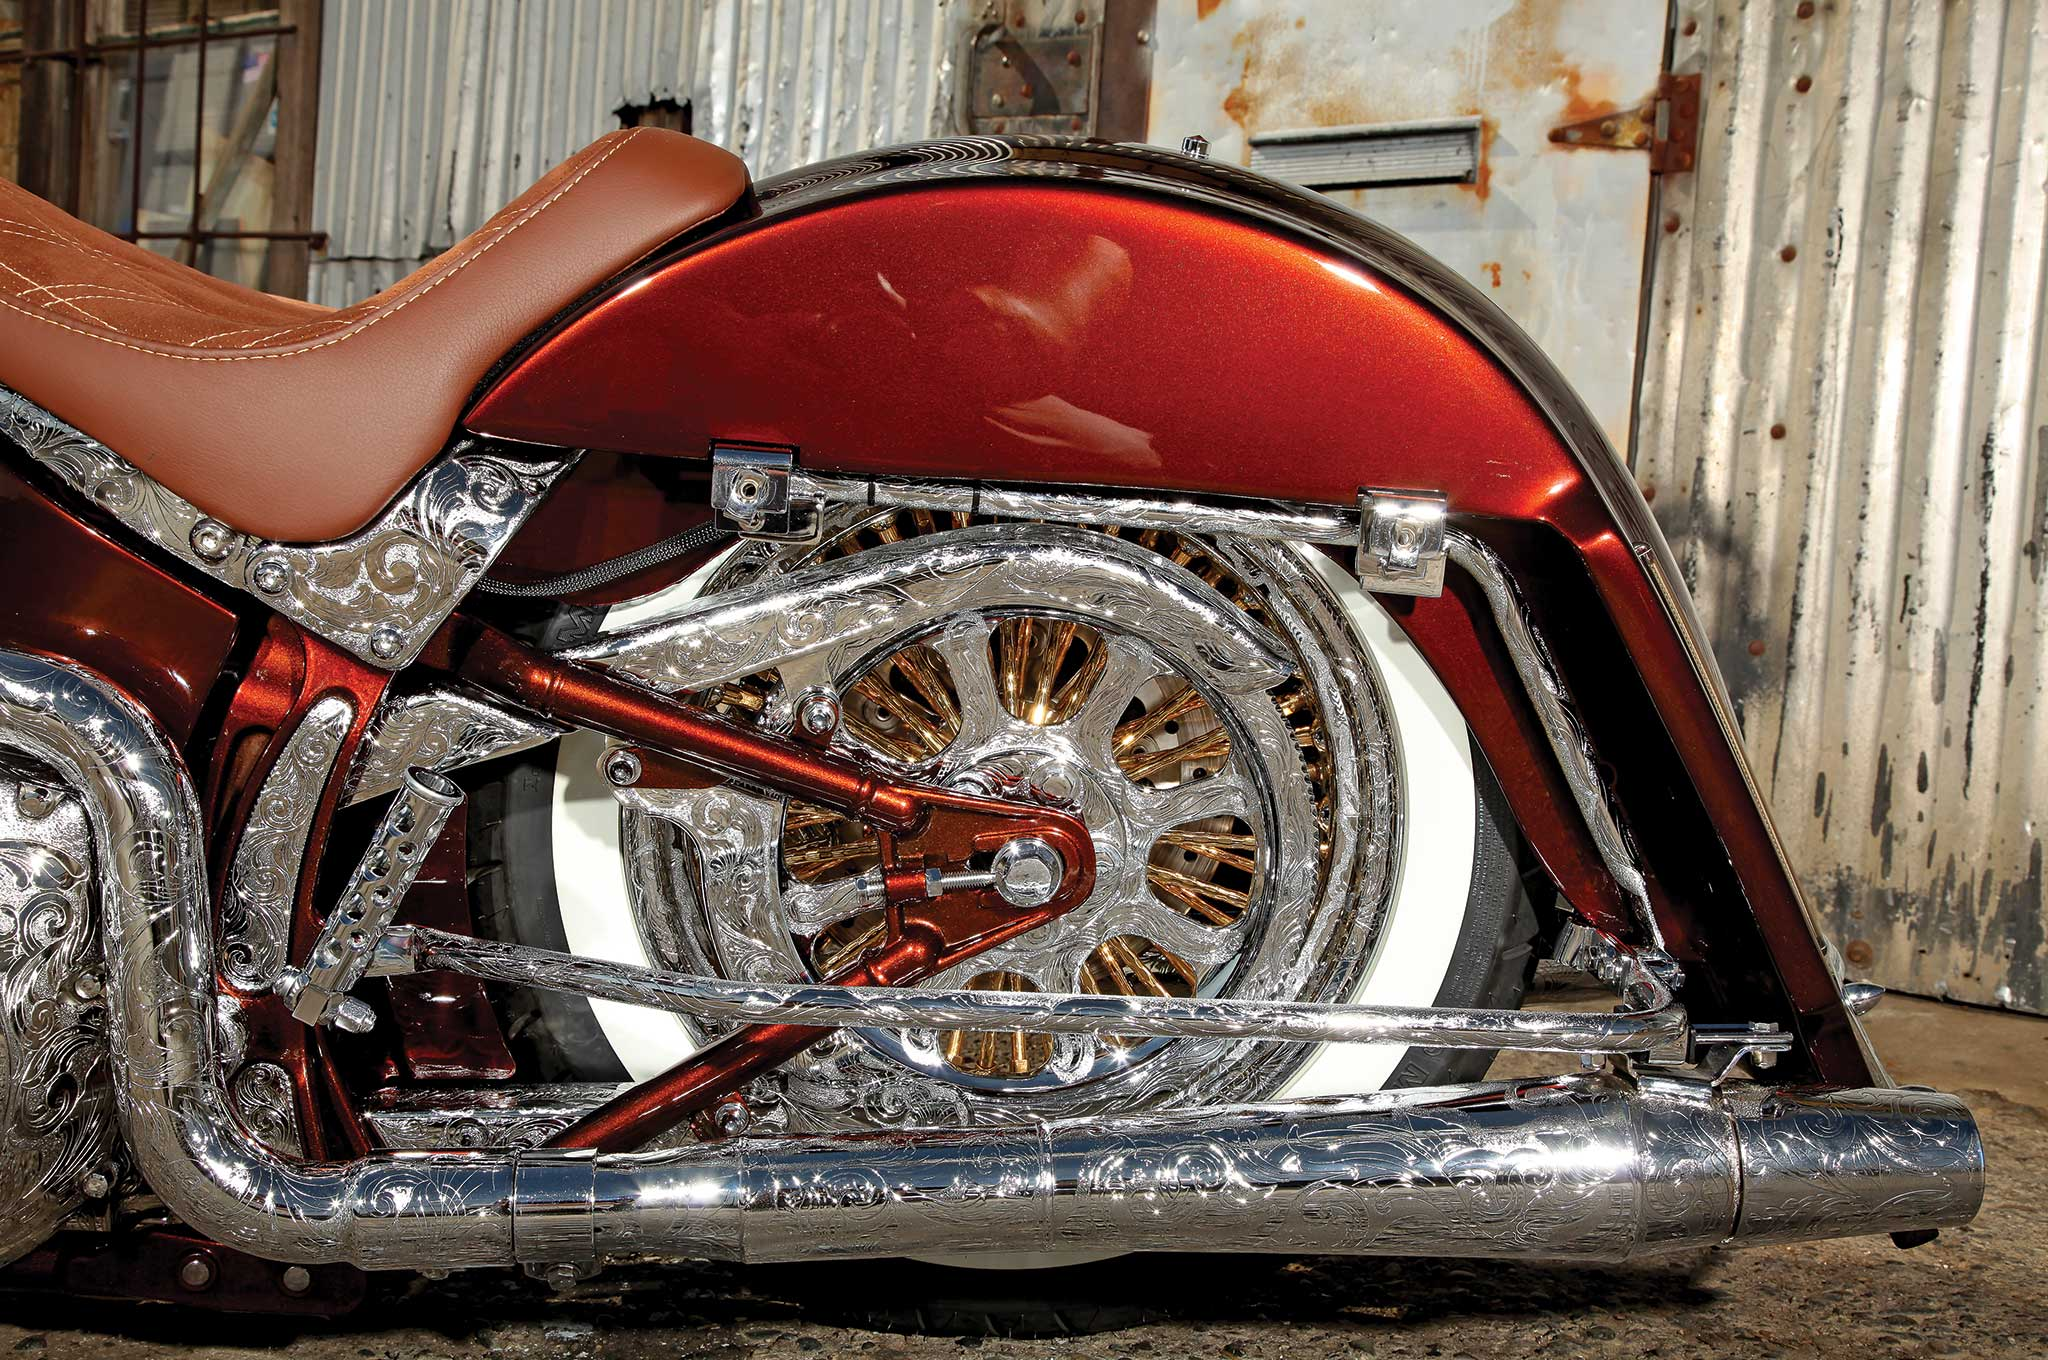 18 Inch Tires >> 2005 Harley-Davidson Fat Boy - Heritage With Style - Lowrider